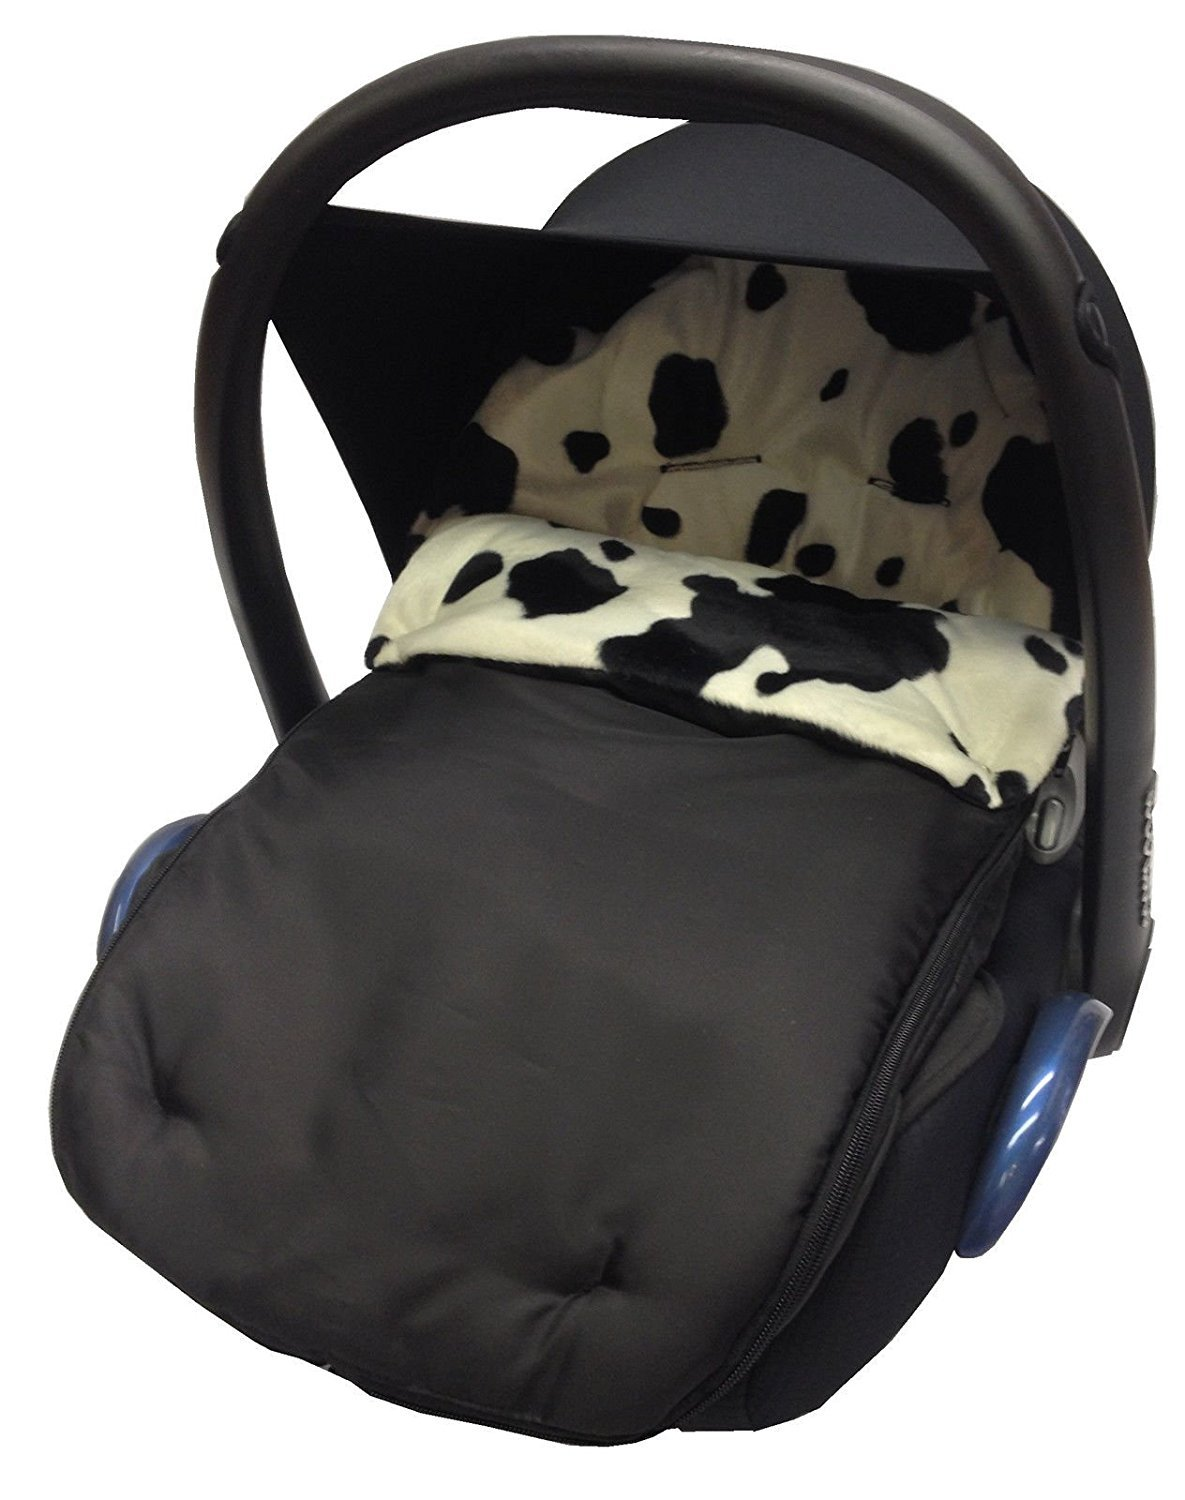 Animal Print Assise rembourr/ée Voiture Chanceli/ère//Cosy orteils Compatible avec Jane Strata Rebel Vache